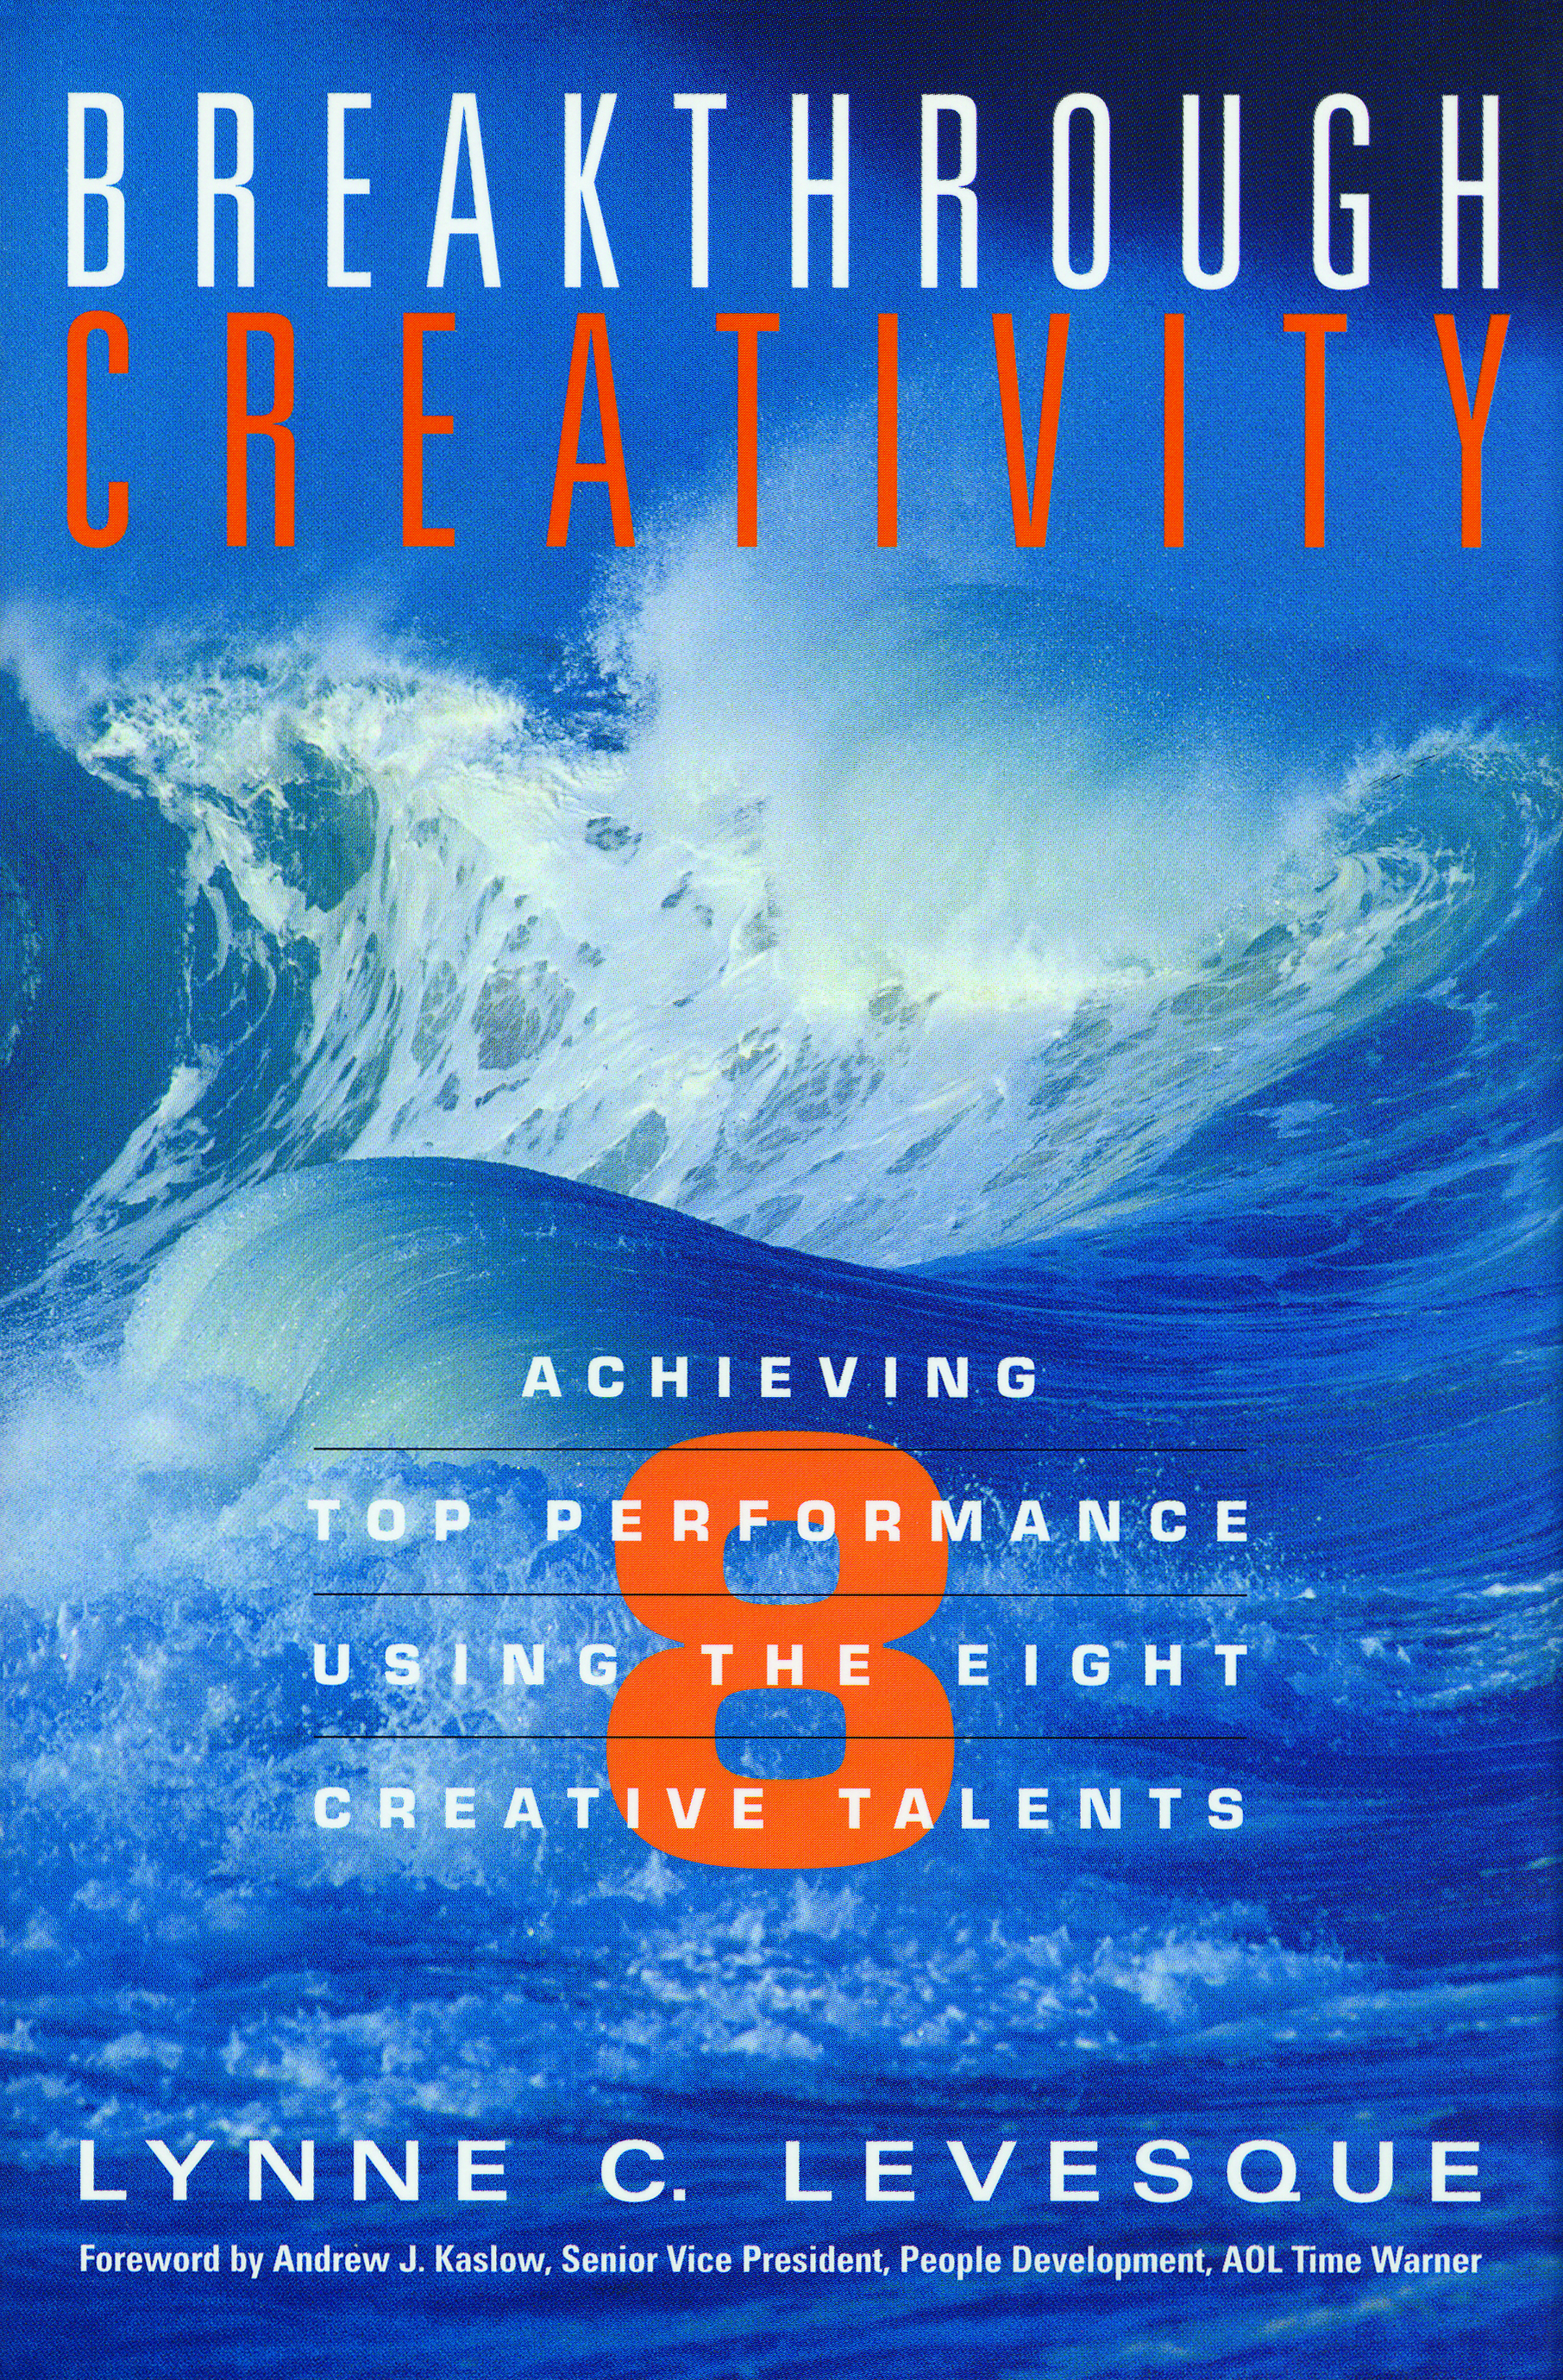 BreakthroughCreativity hi-res.jpg